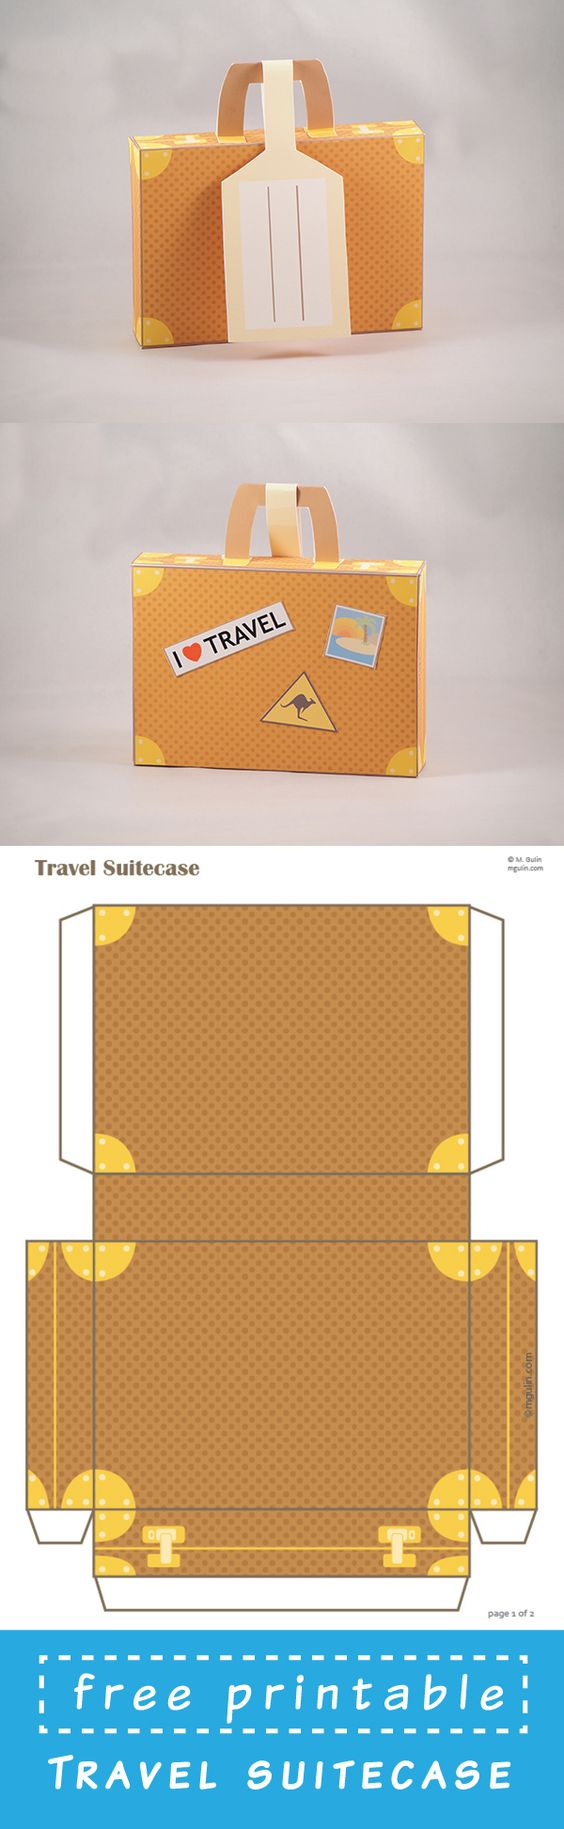 Free Printable Suitcase template. Just dowload and assemble.: